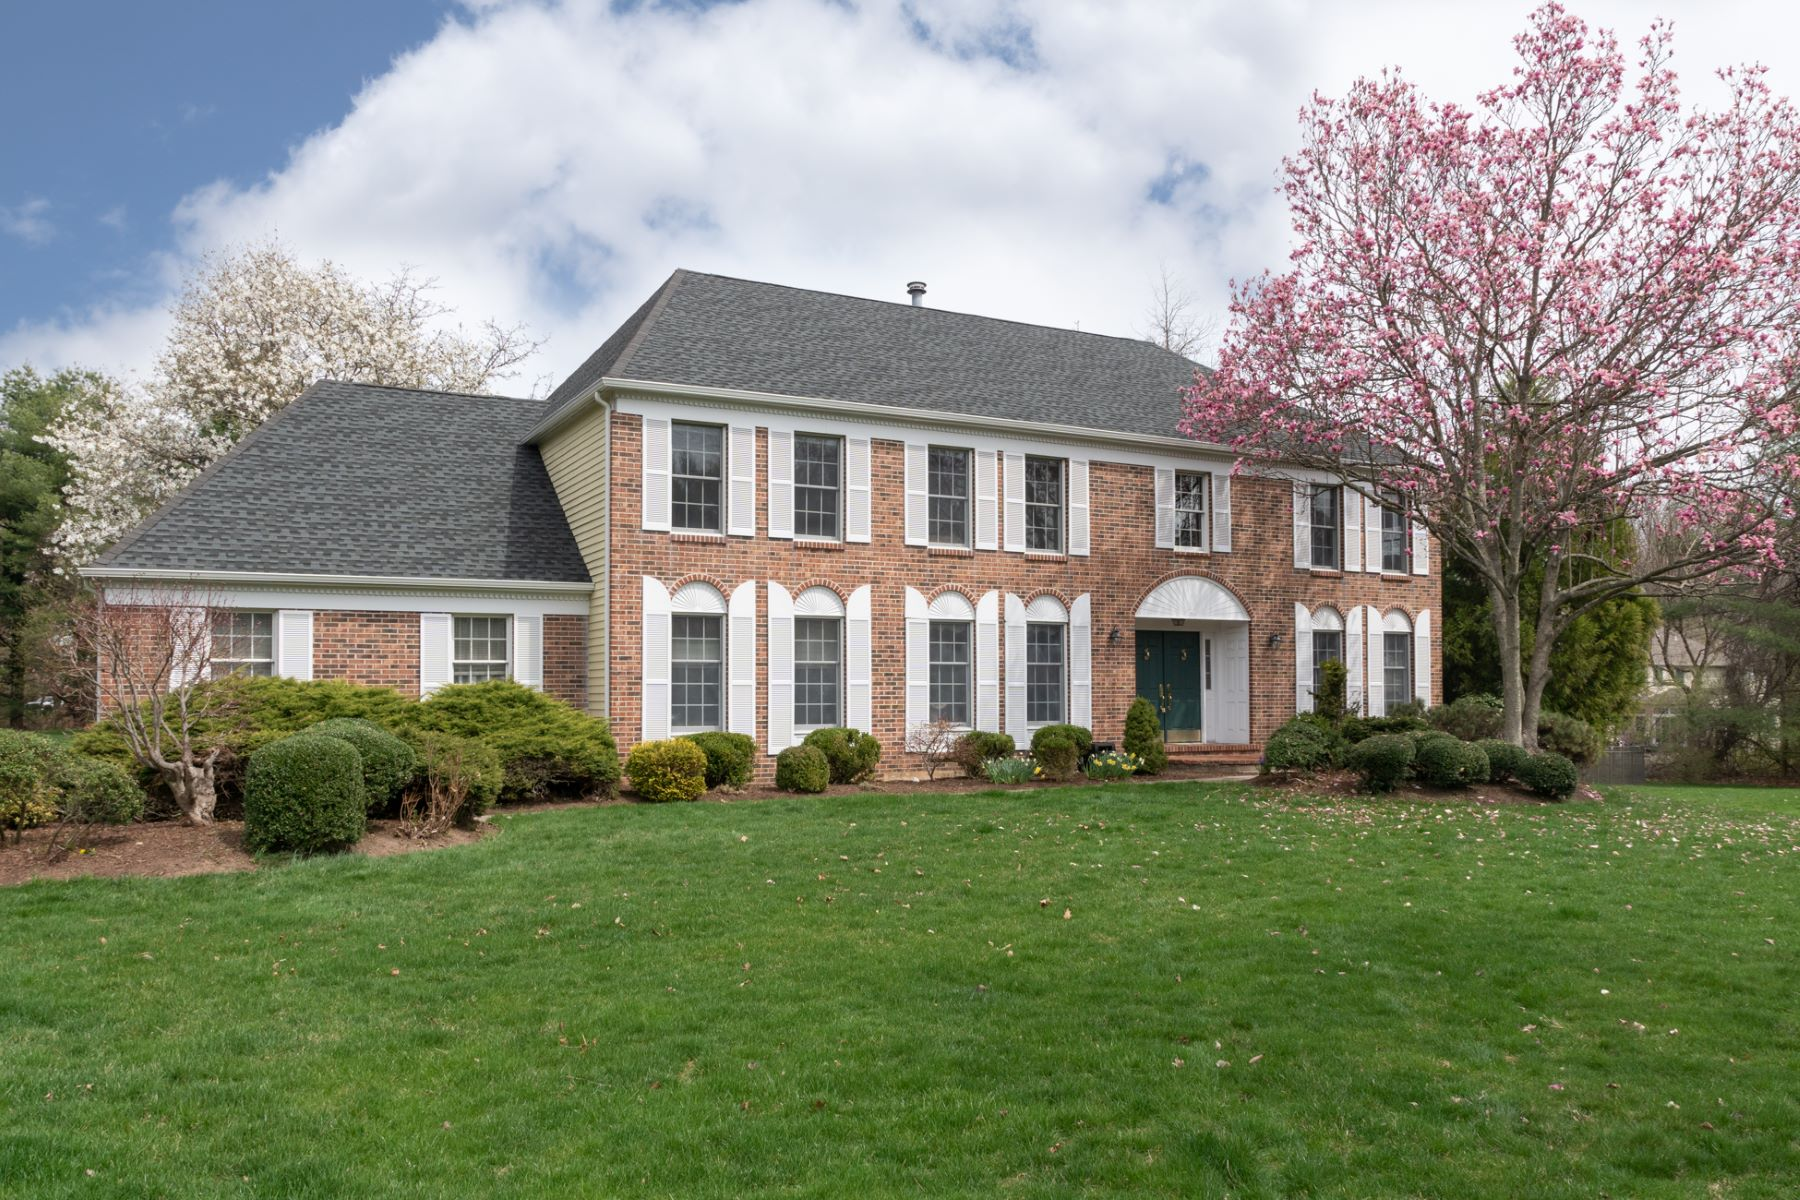 Property for Sale at Classic Princeton Colonial Impresses and Delights 110 Potters Run, Princeton, New Jersey 08540 United States